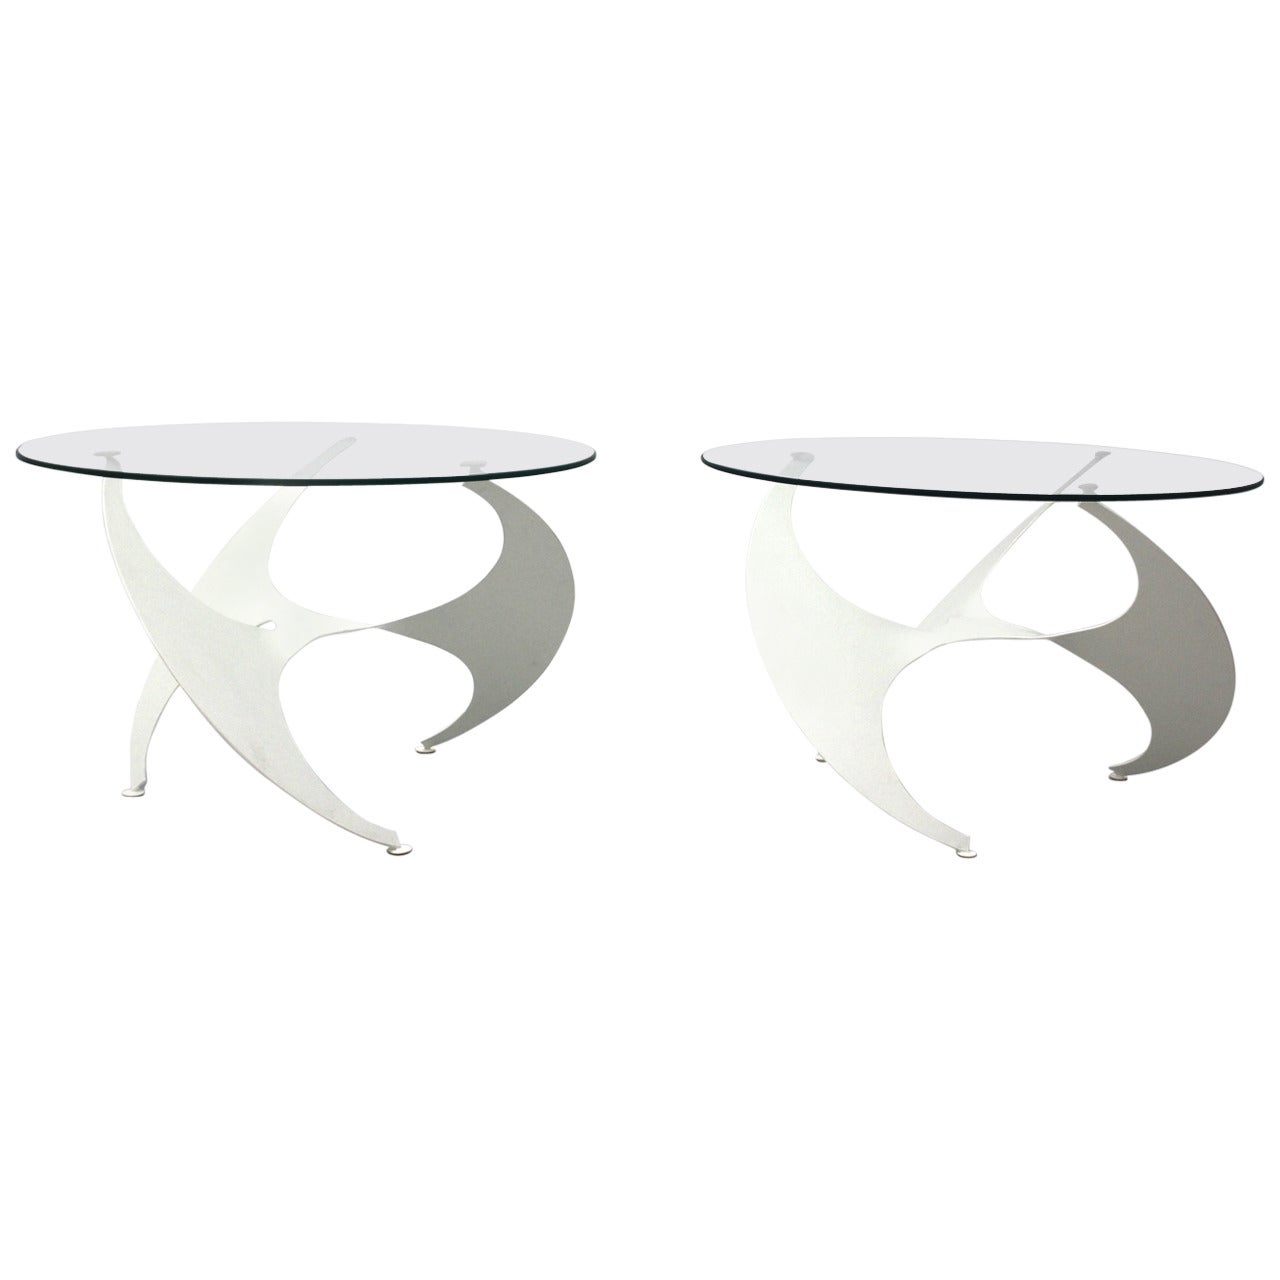 Space Age Pair of White Vintage Metal Coffee Table Knut Hesterberg 1960